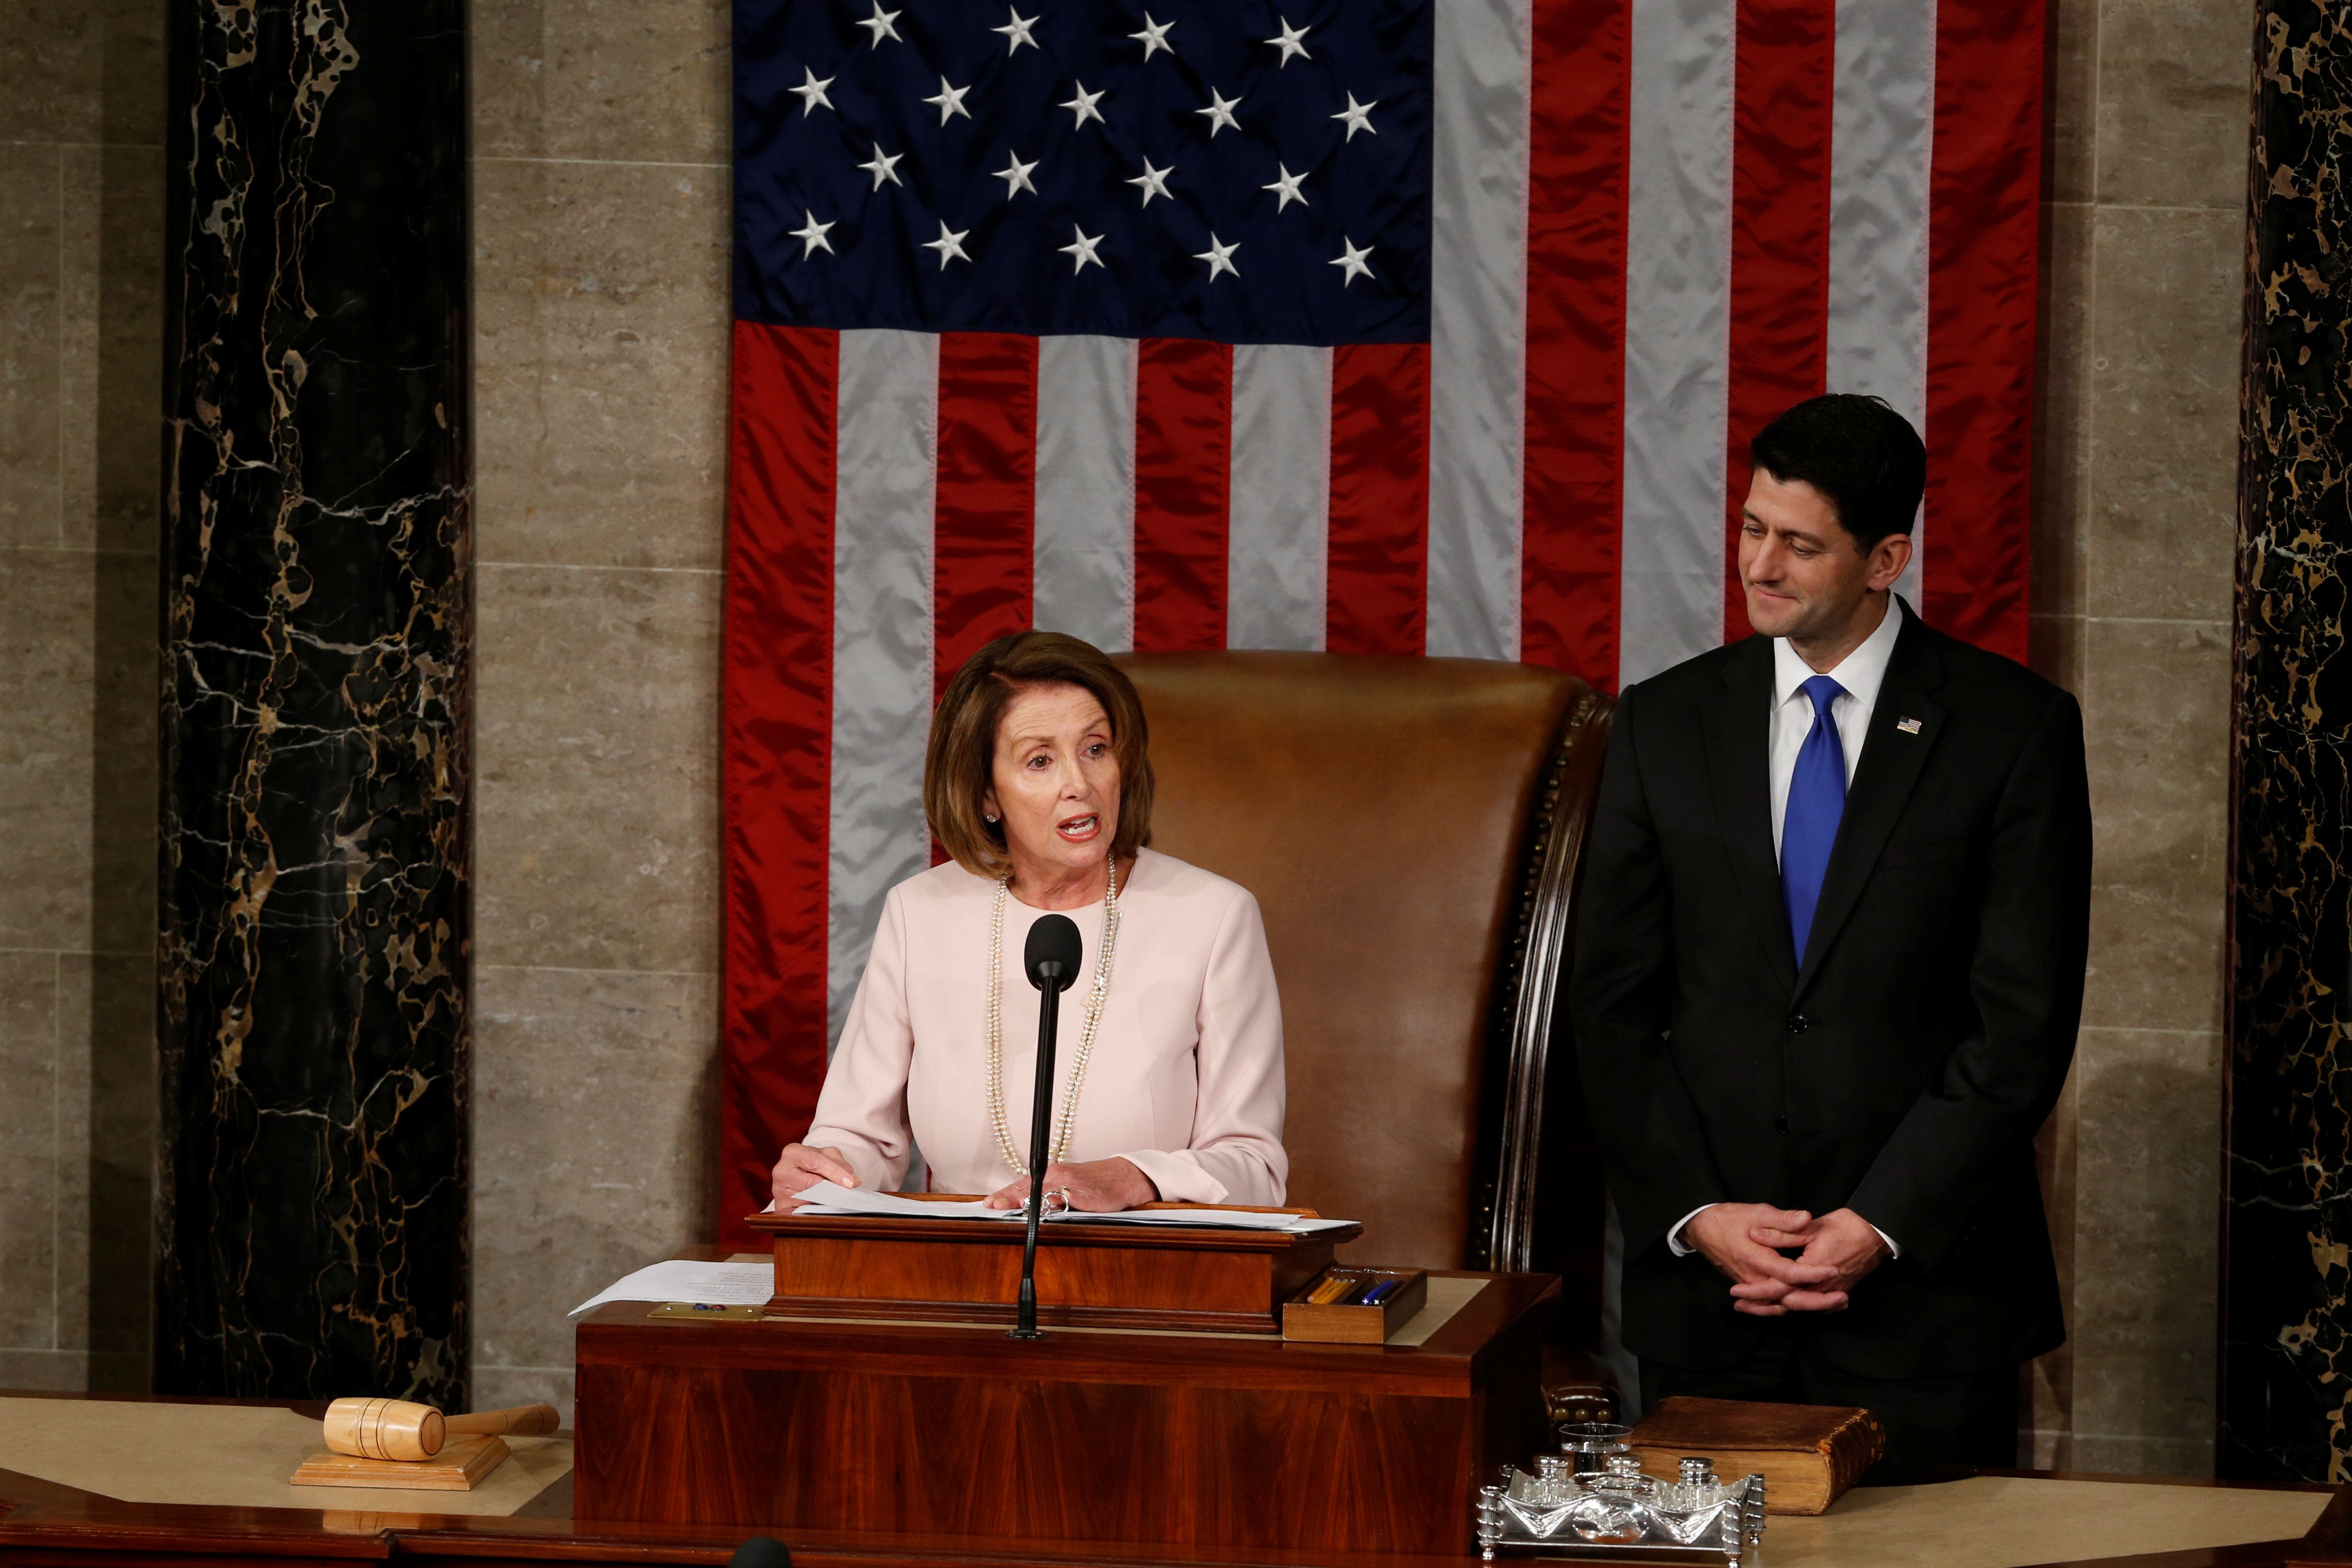 U.S. House Speaker Paul Ryan (R-WI) listens to House Democratic Leader Nancy Pelosi (D-CA) during the opening session of the new Congress on Capitol Hill in Washington, U.S., January 3, 2017. REUTERS/Jonathan Ernst